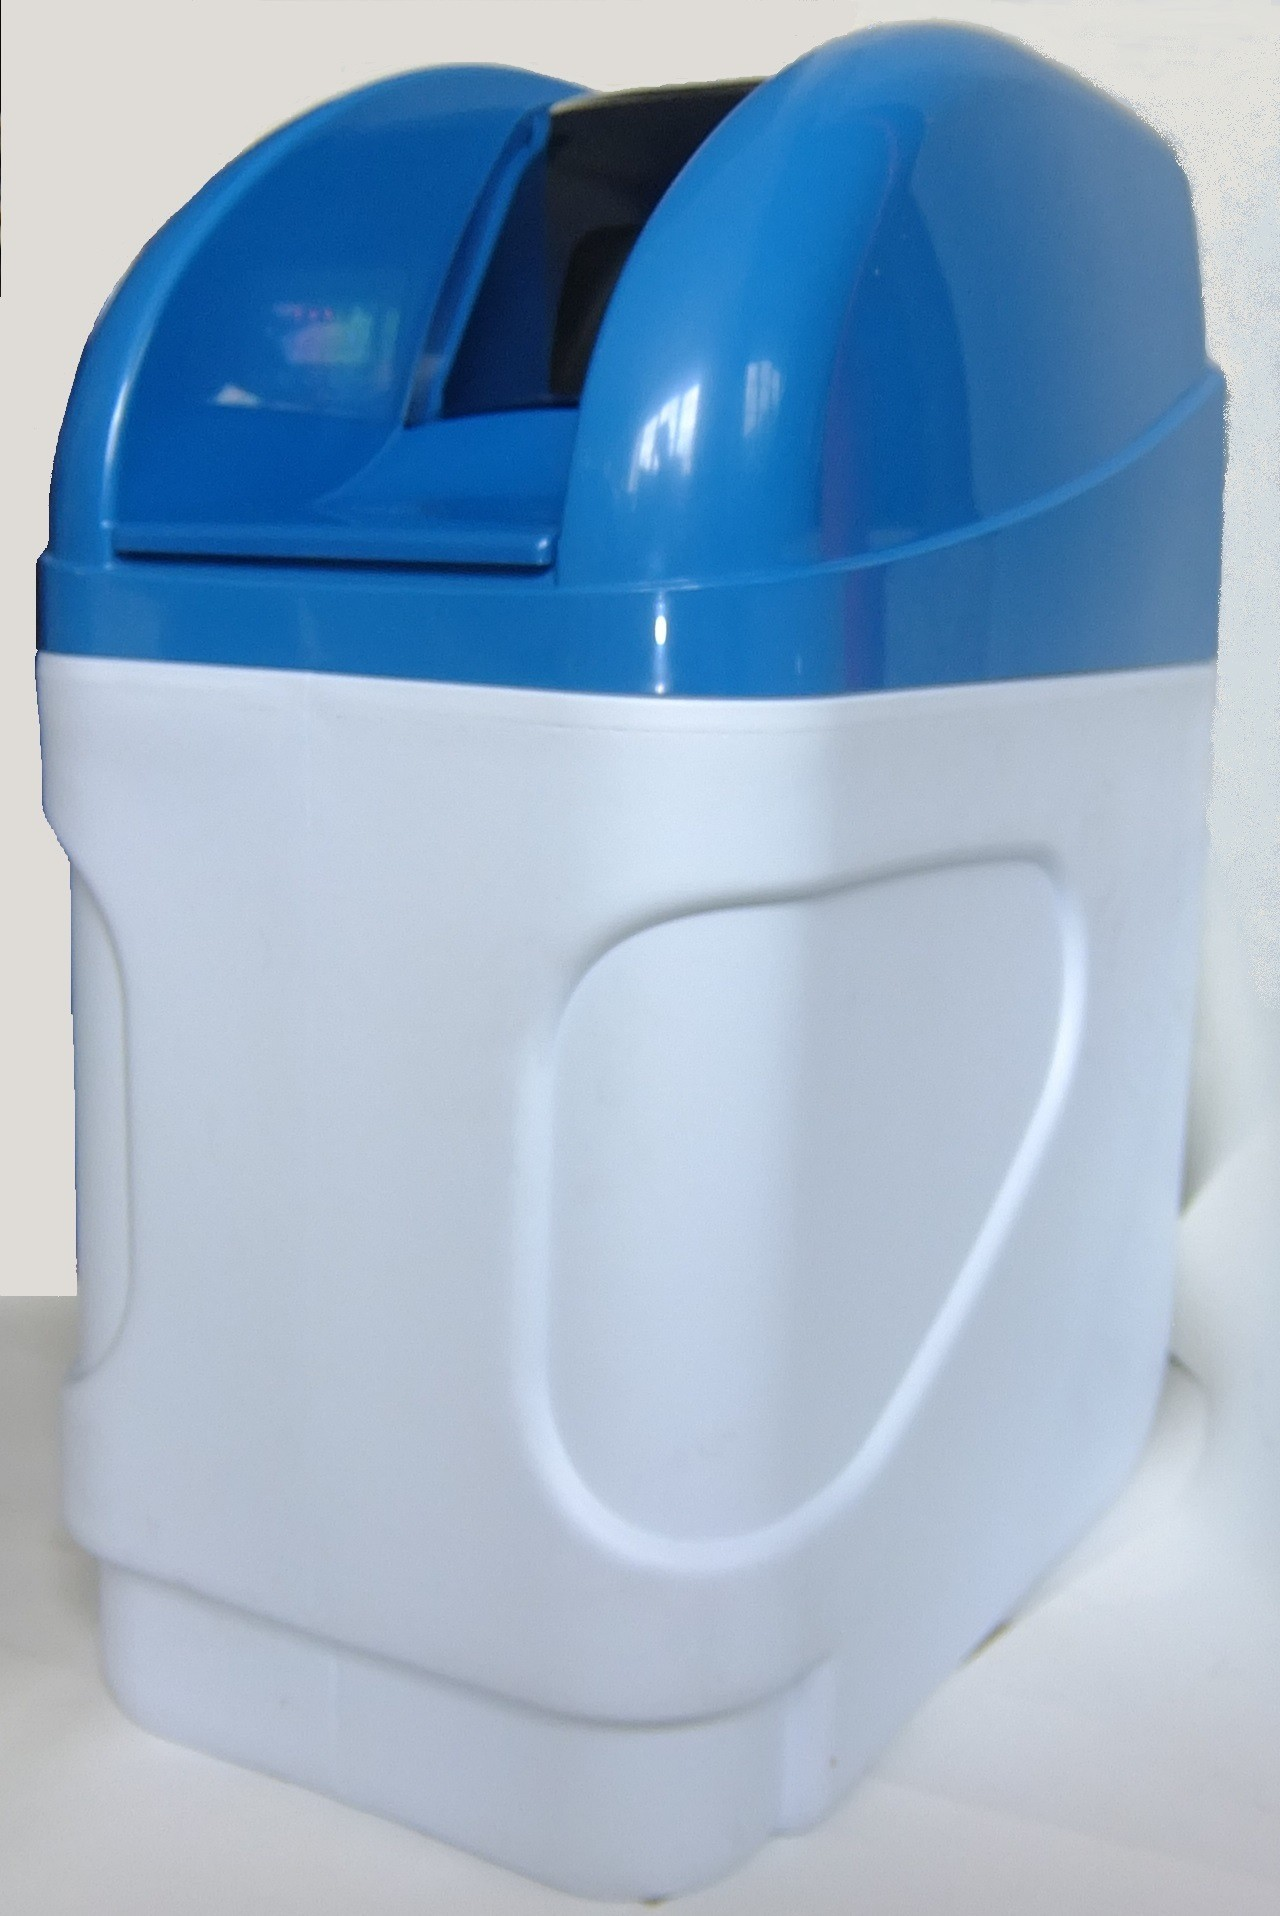 WTRX Water Softener